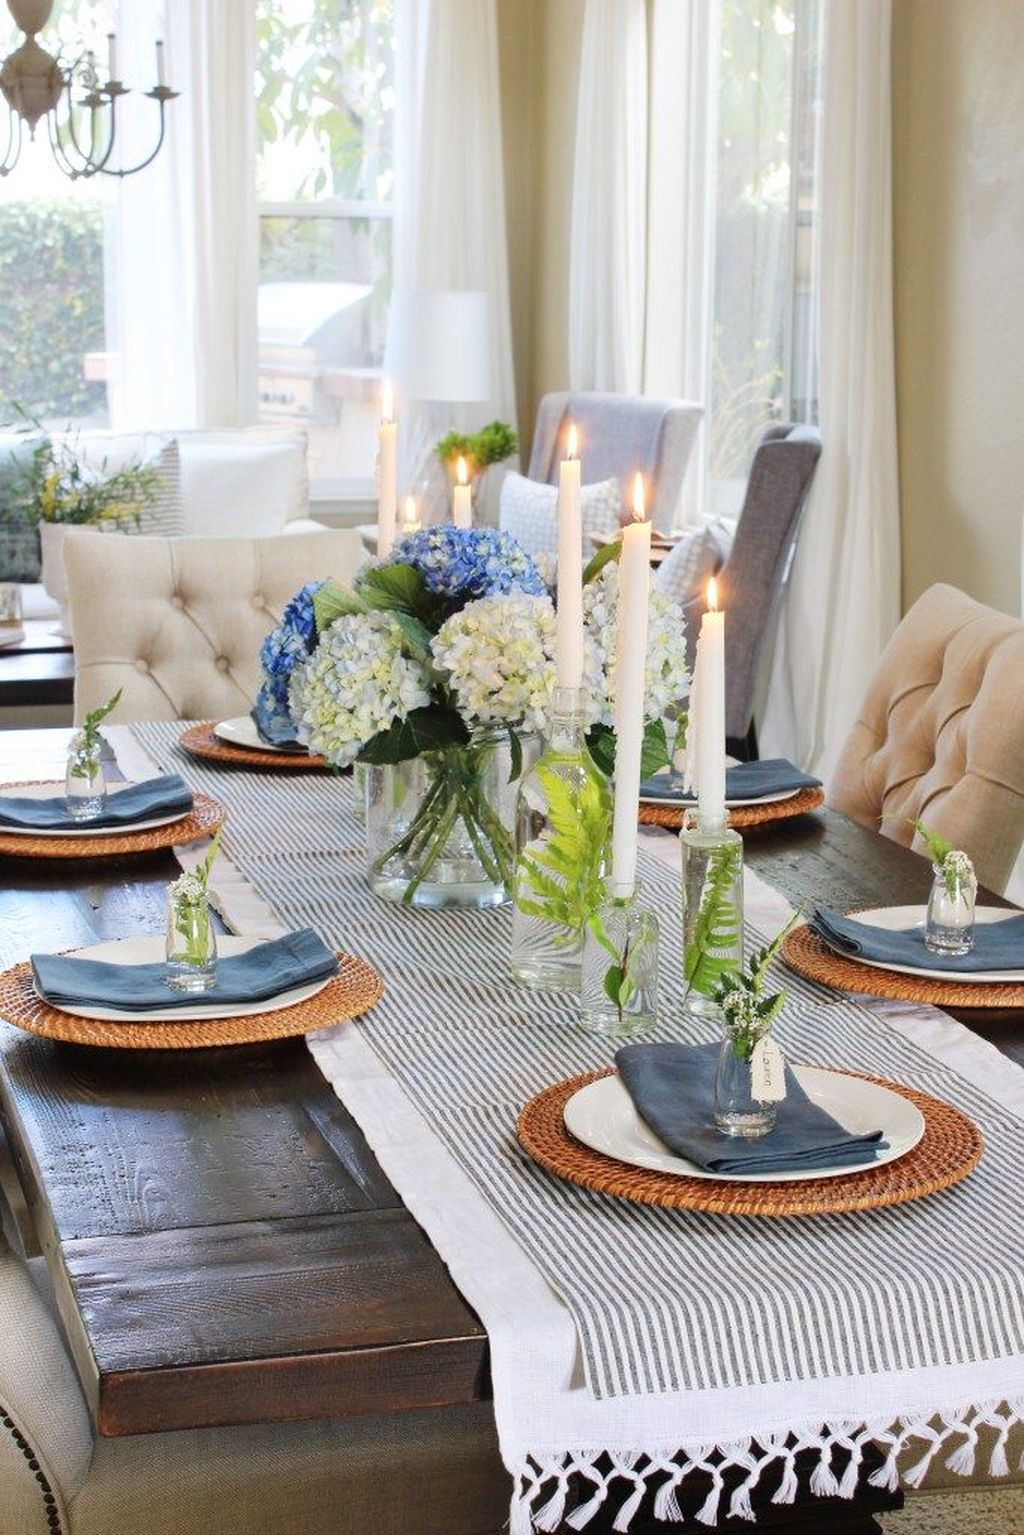 Inspiring Spring Table Centerpieces Best For Dining Room 32